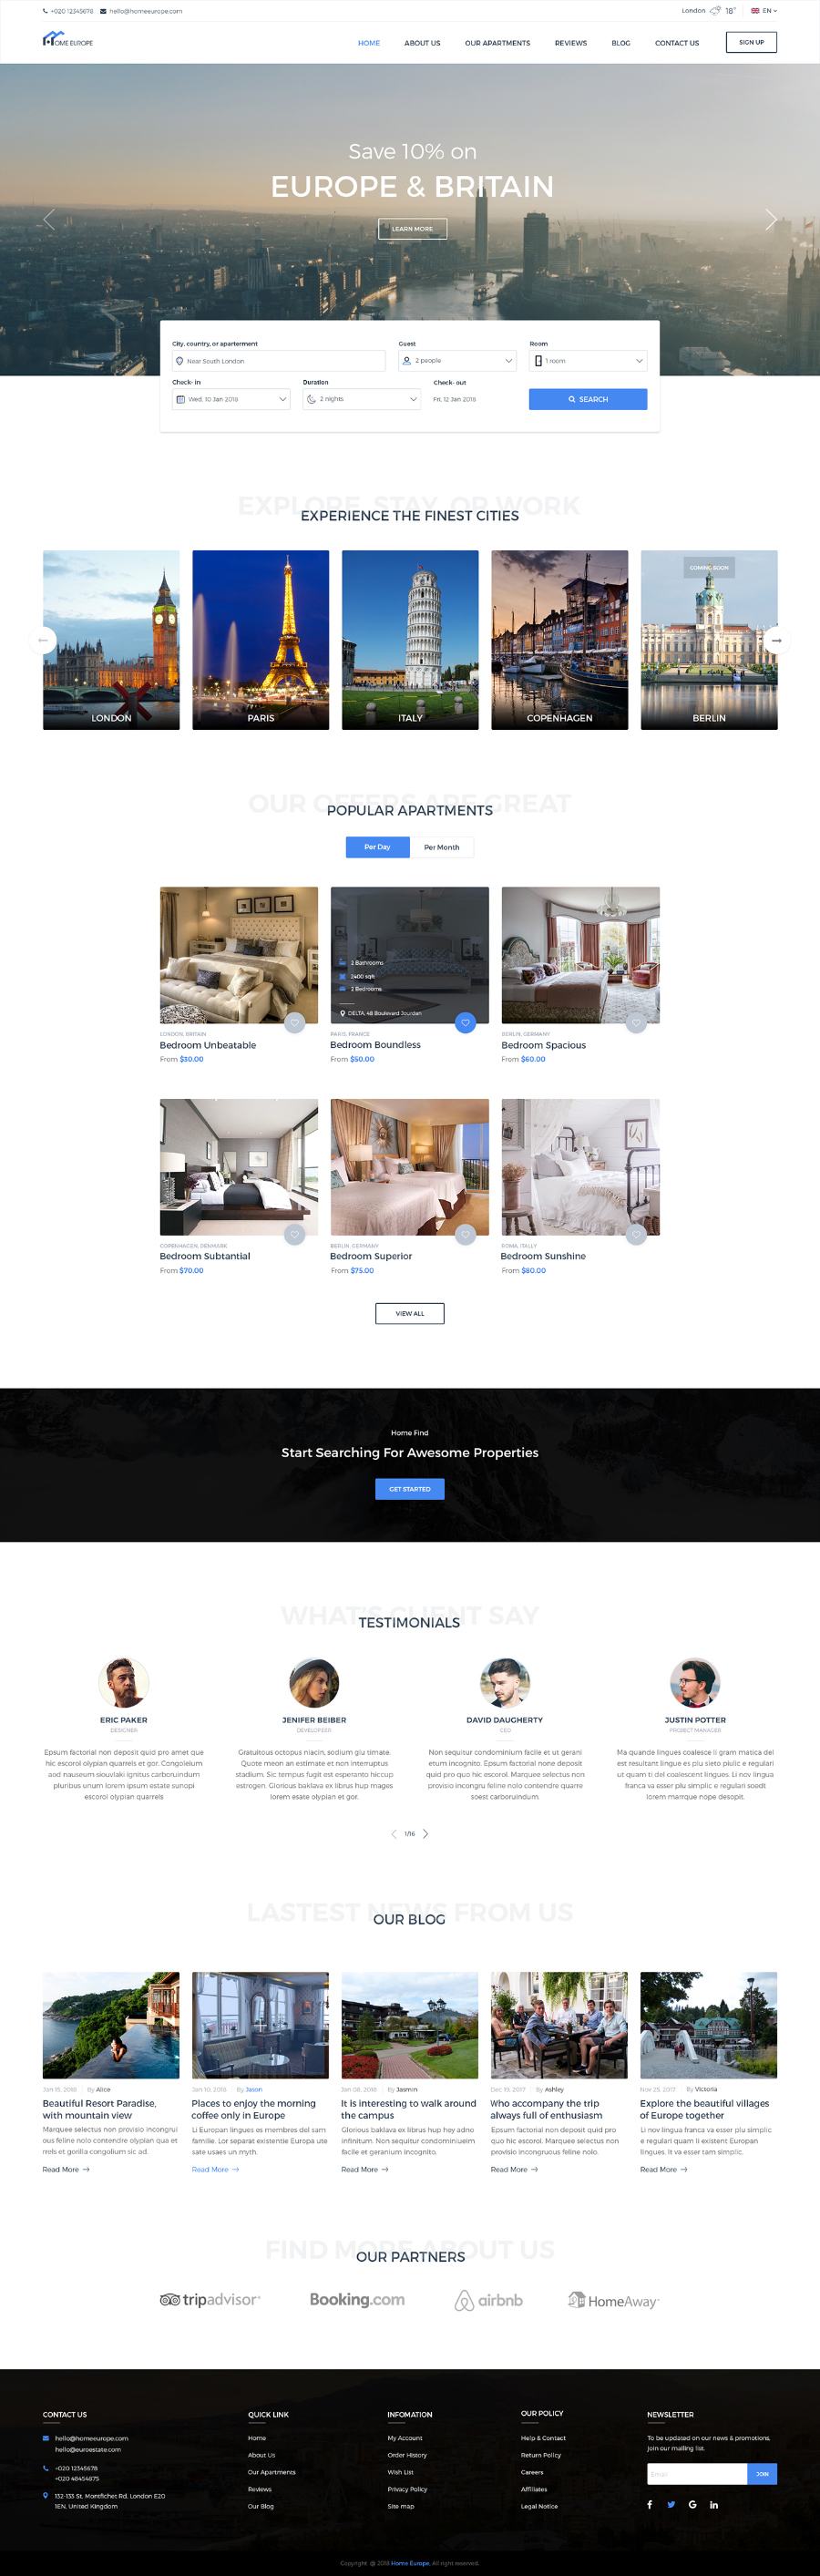 HomeEstate Free PSD Template